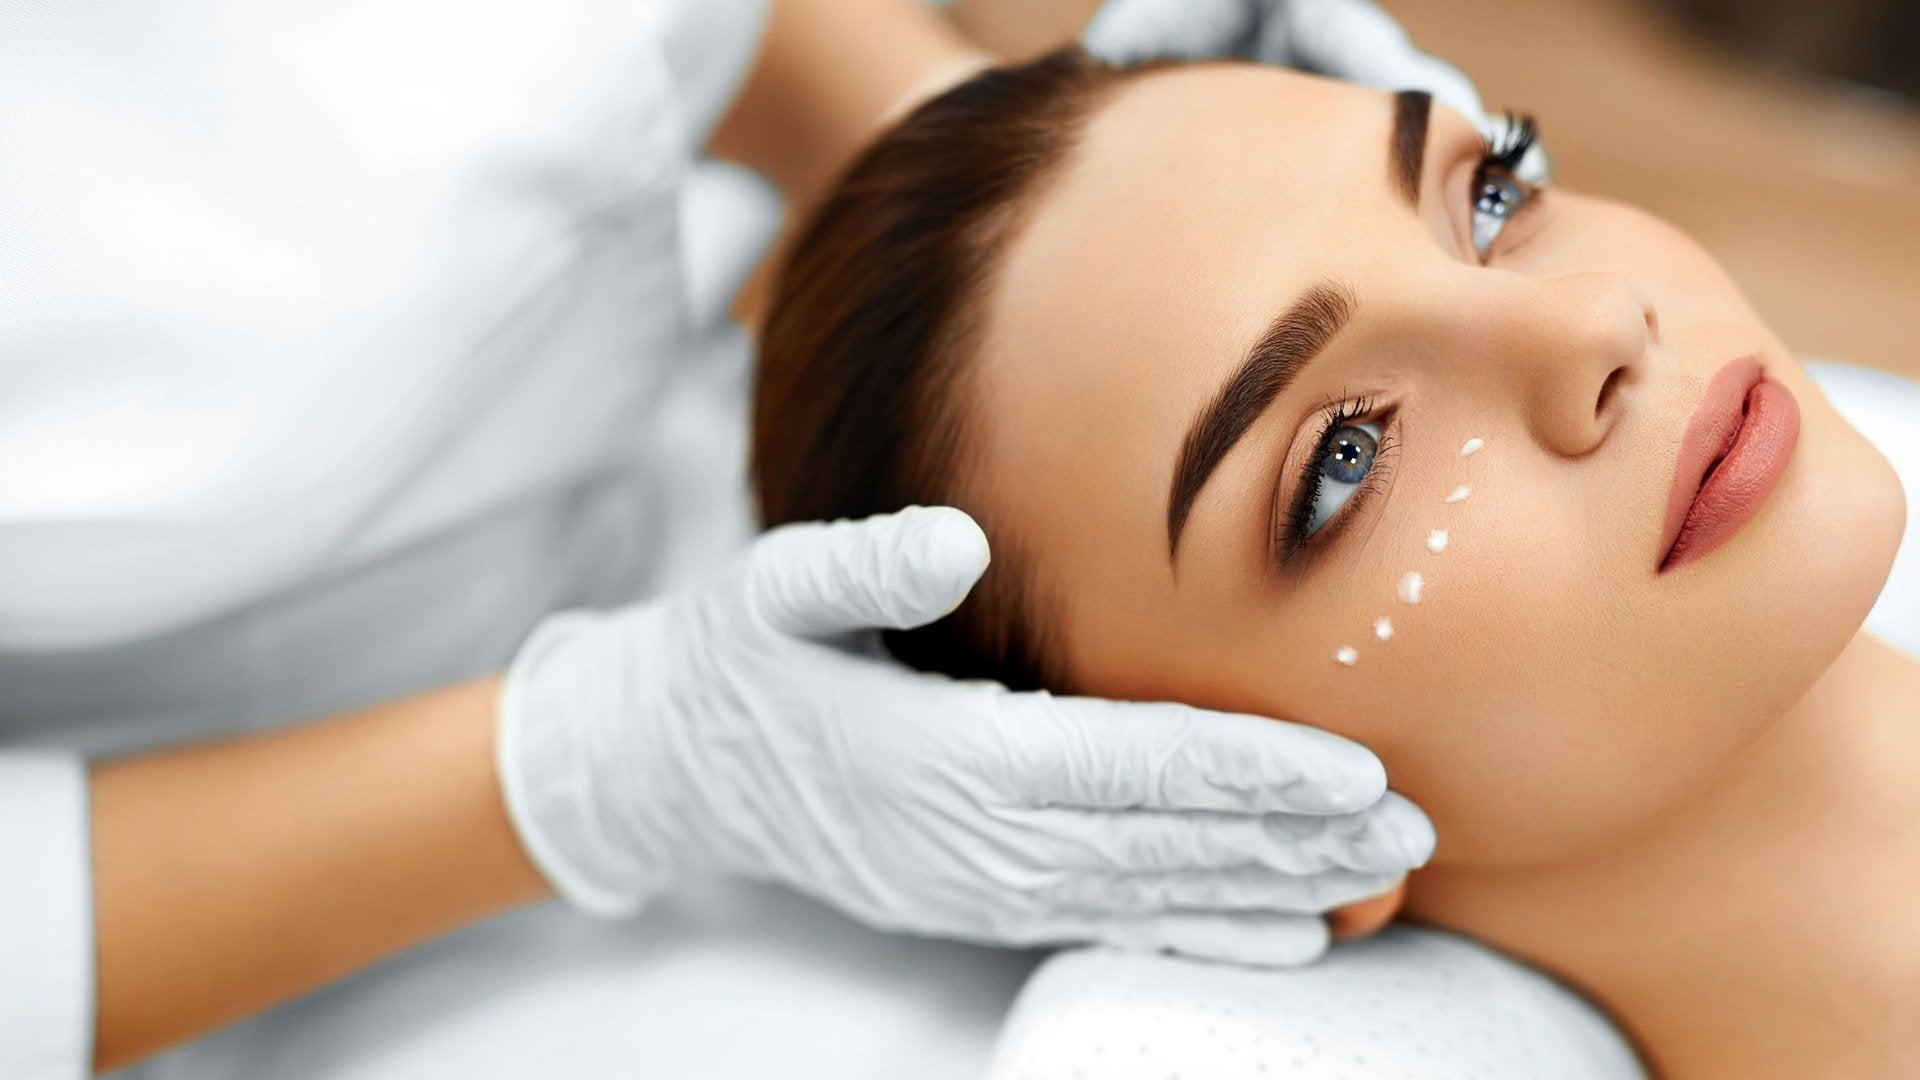 Facelift in Minutes at Home